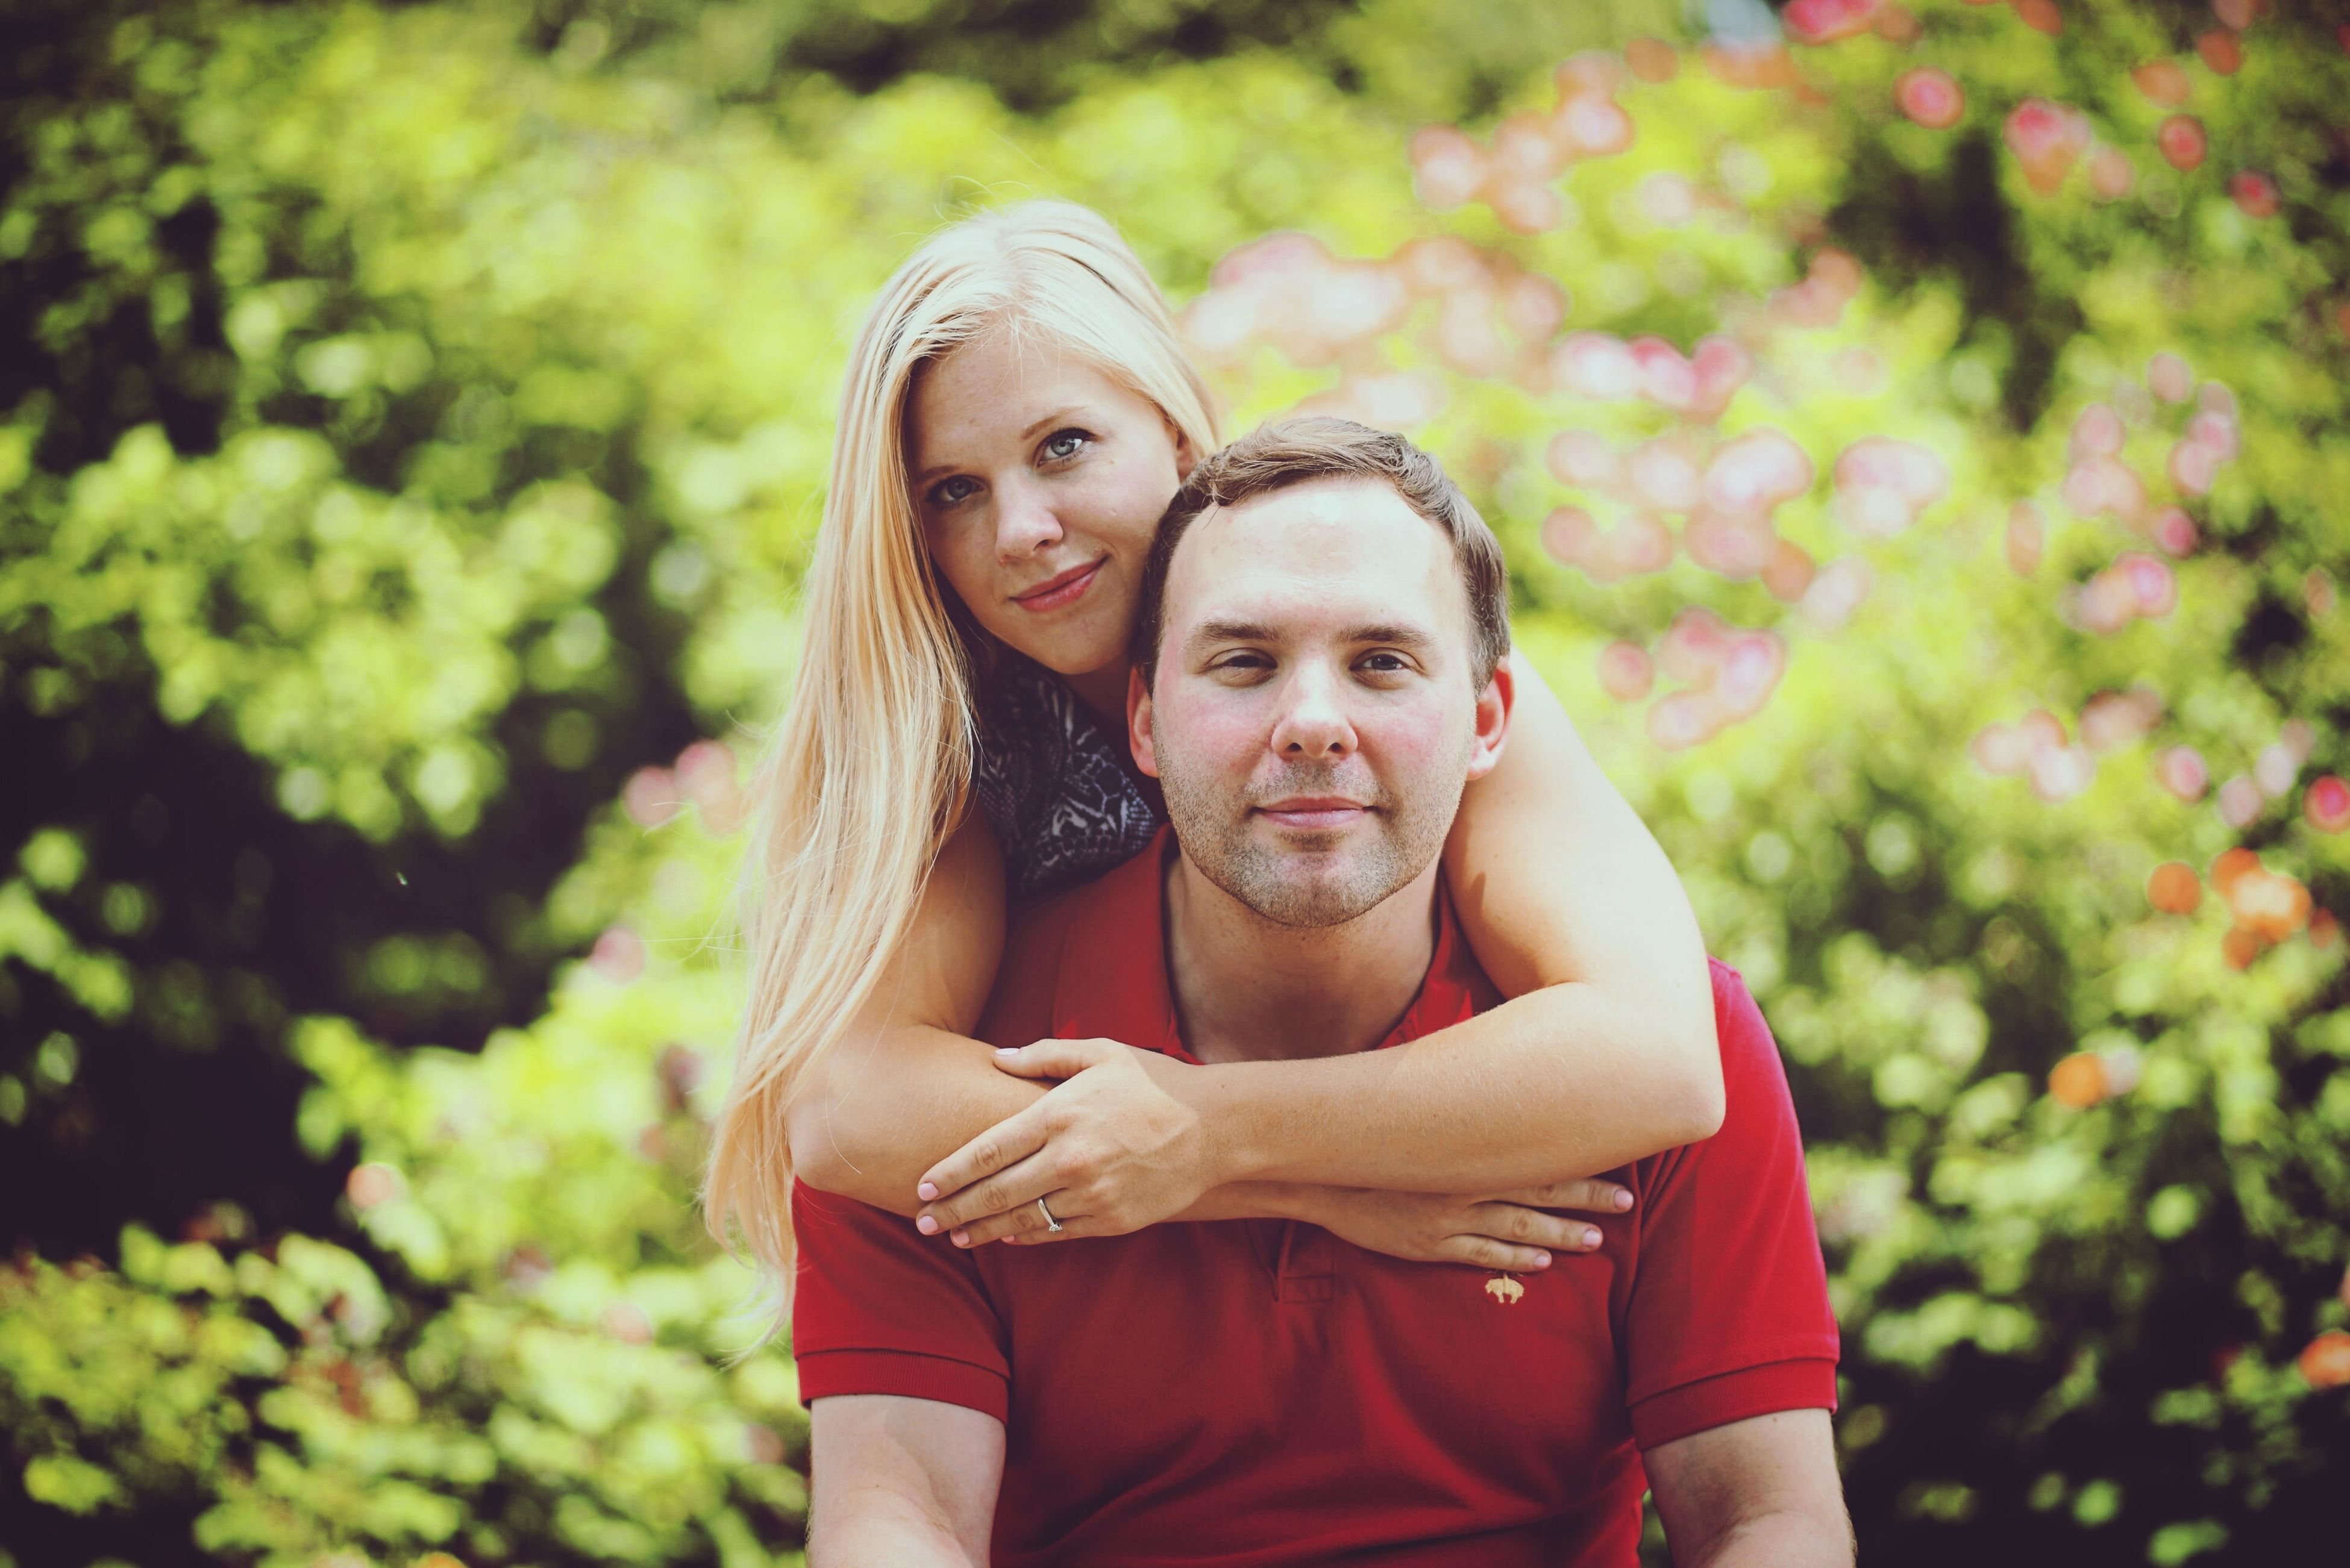 two people, portrait, happiness, embracing, looking at camera, love, park - man made space, smiling, togetherness, heterosexual couple, beautiful people, social issues, young adult, women, adult, females, blond hair, fun, lifestyles, young women, men, care, green color, outdoors, bonding, beauty, friendship, people, cheerful, nature, adults only, day